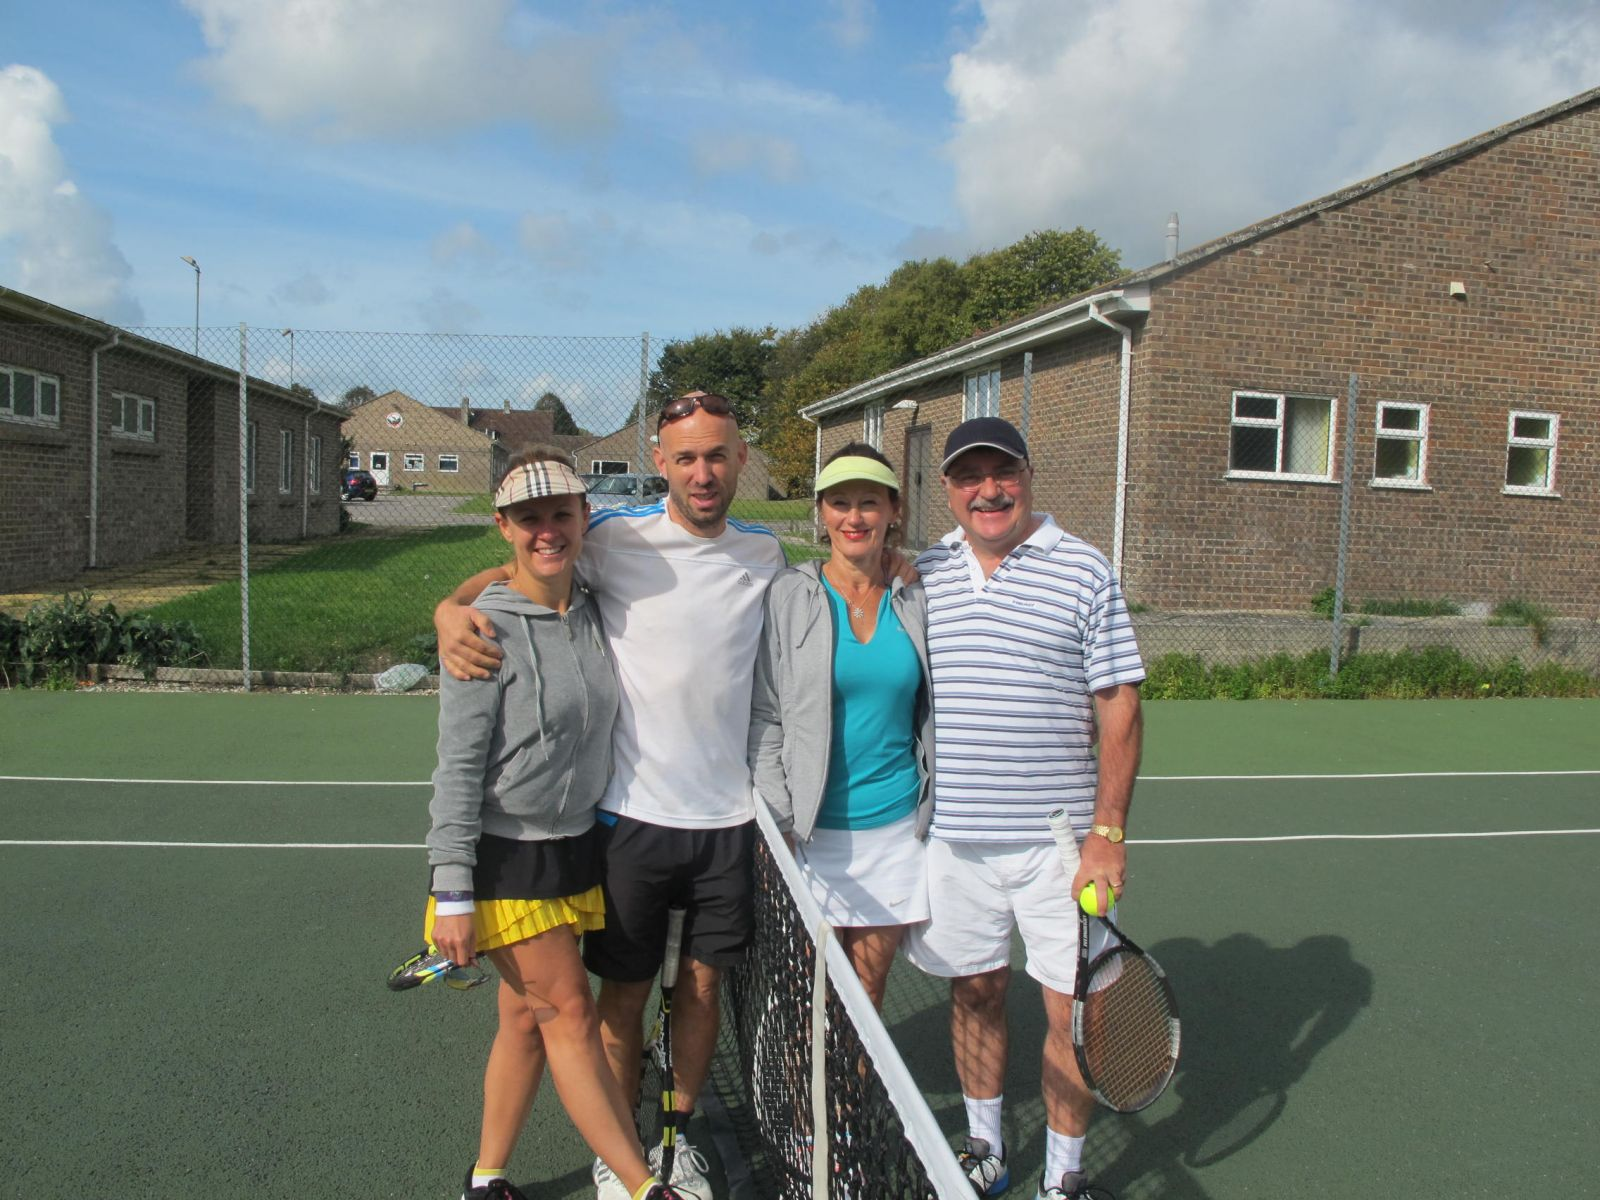 Mixed Doubles Consolation finalists, Chrissy & Andy Mayers (runners-up) and Ann Williams & Keith Mason (winners)